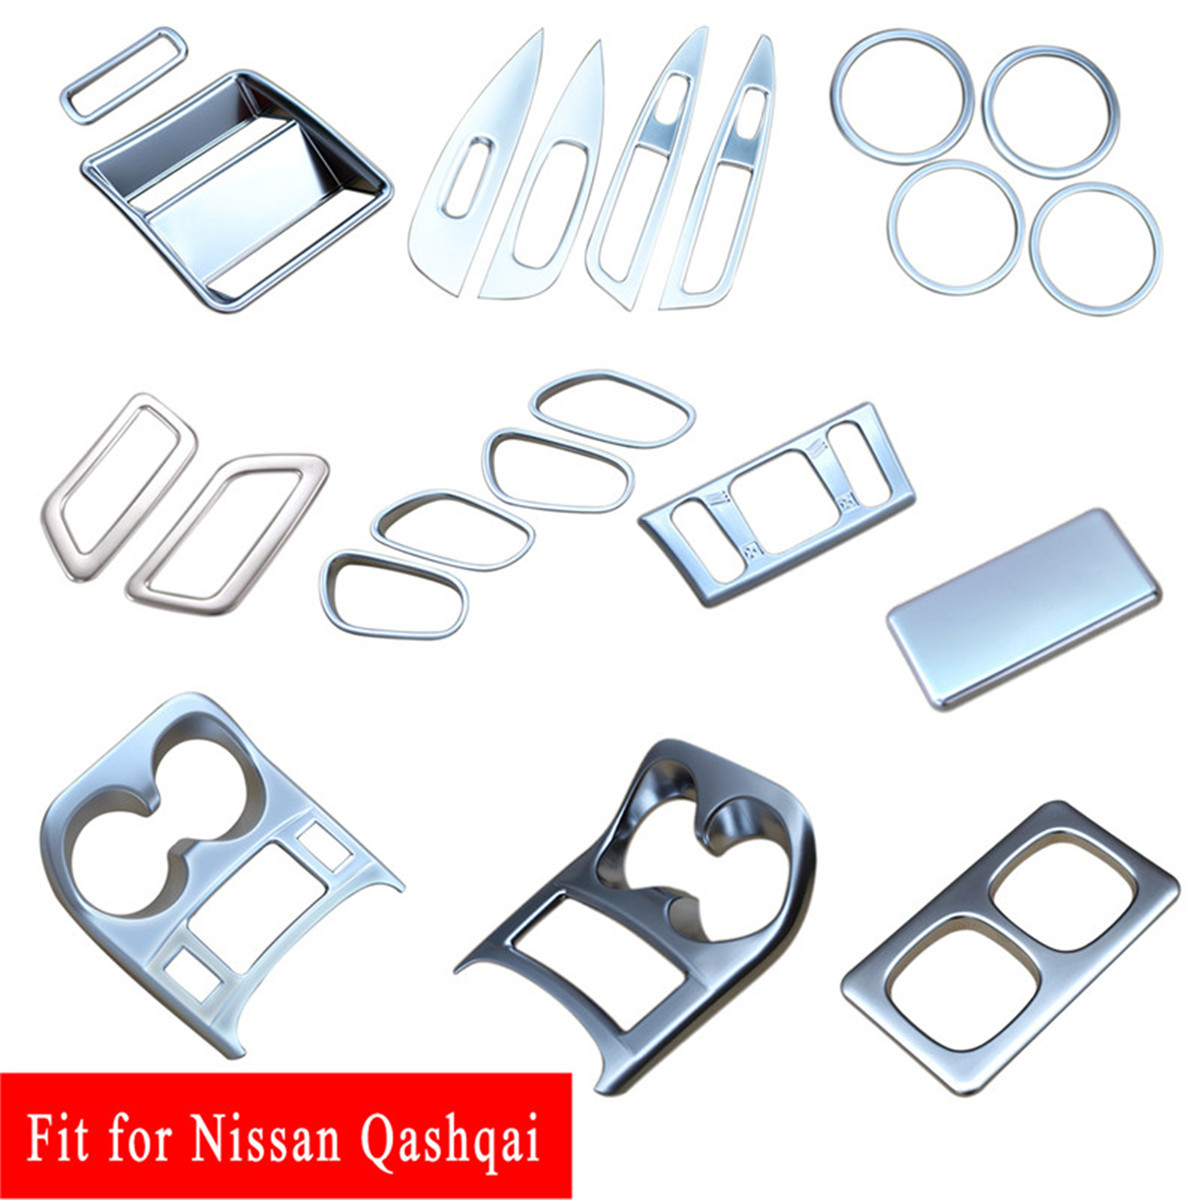 Chrome Accessories Water Cup holder Door handle Air Vent Cover Trim Fit For Nissan Qashqai J11 2014 2015 2016 2017 2018 2019